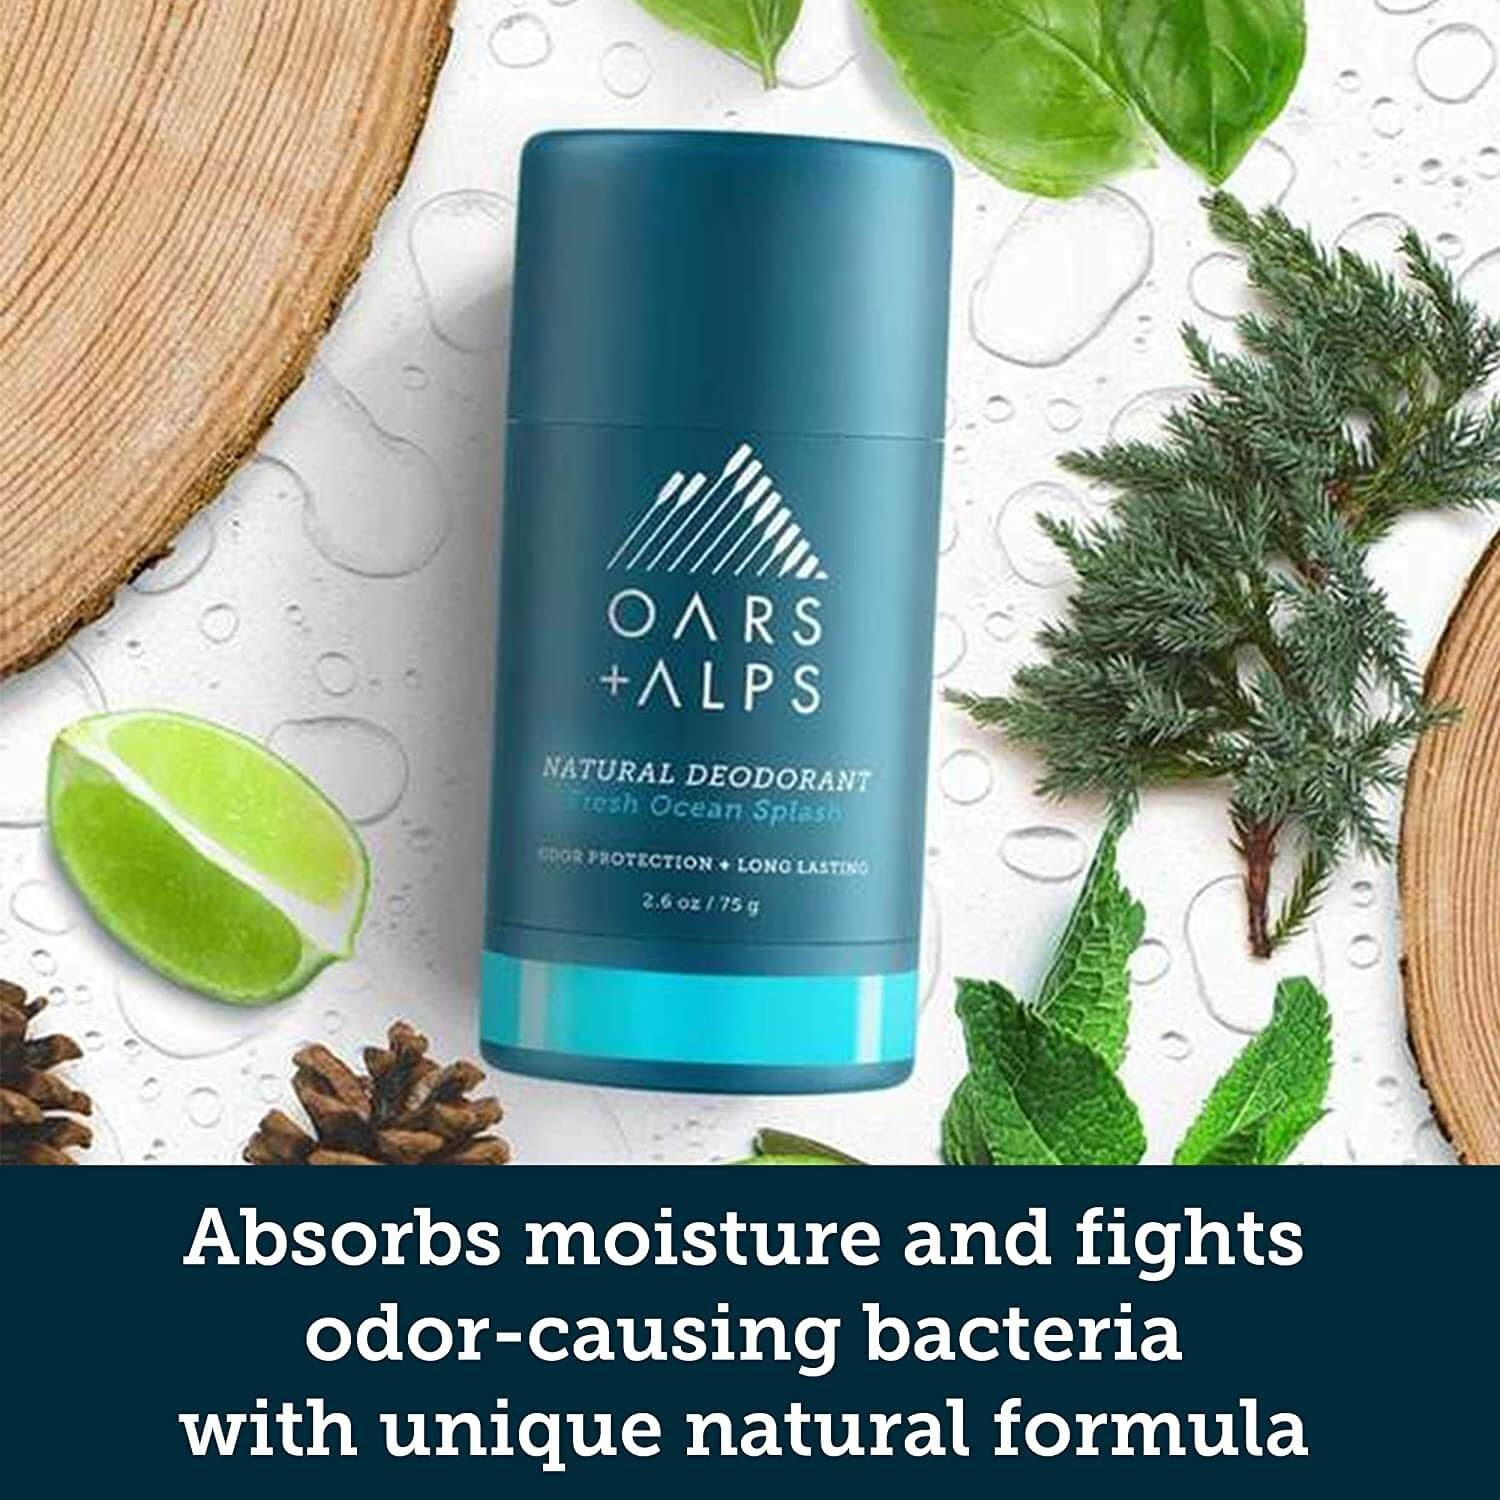 Oars + Alps Natural Deodorant